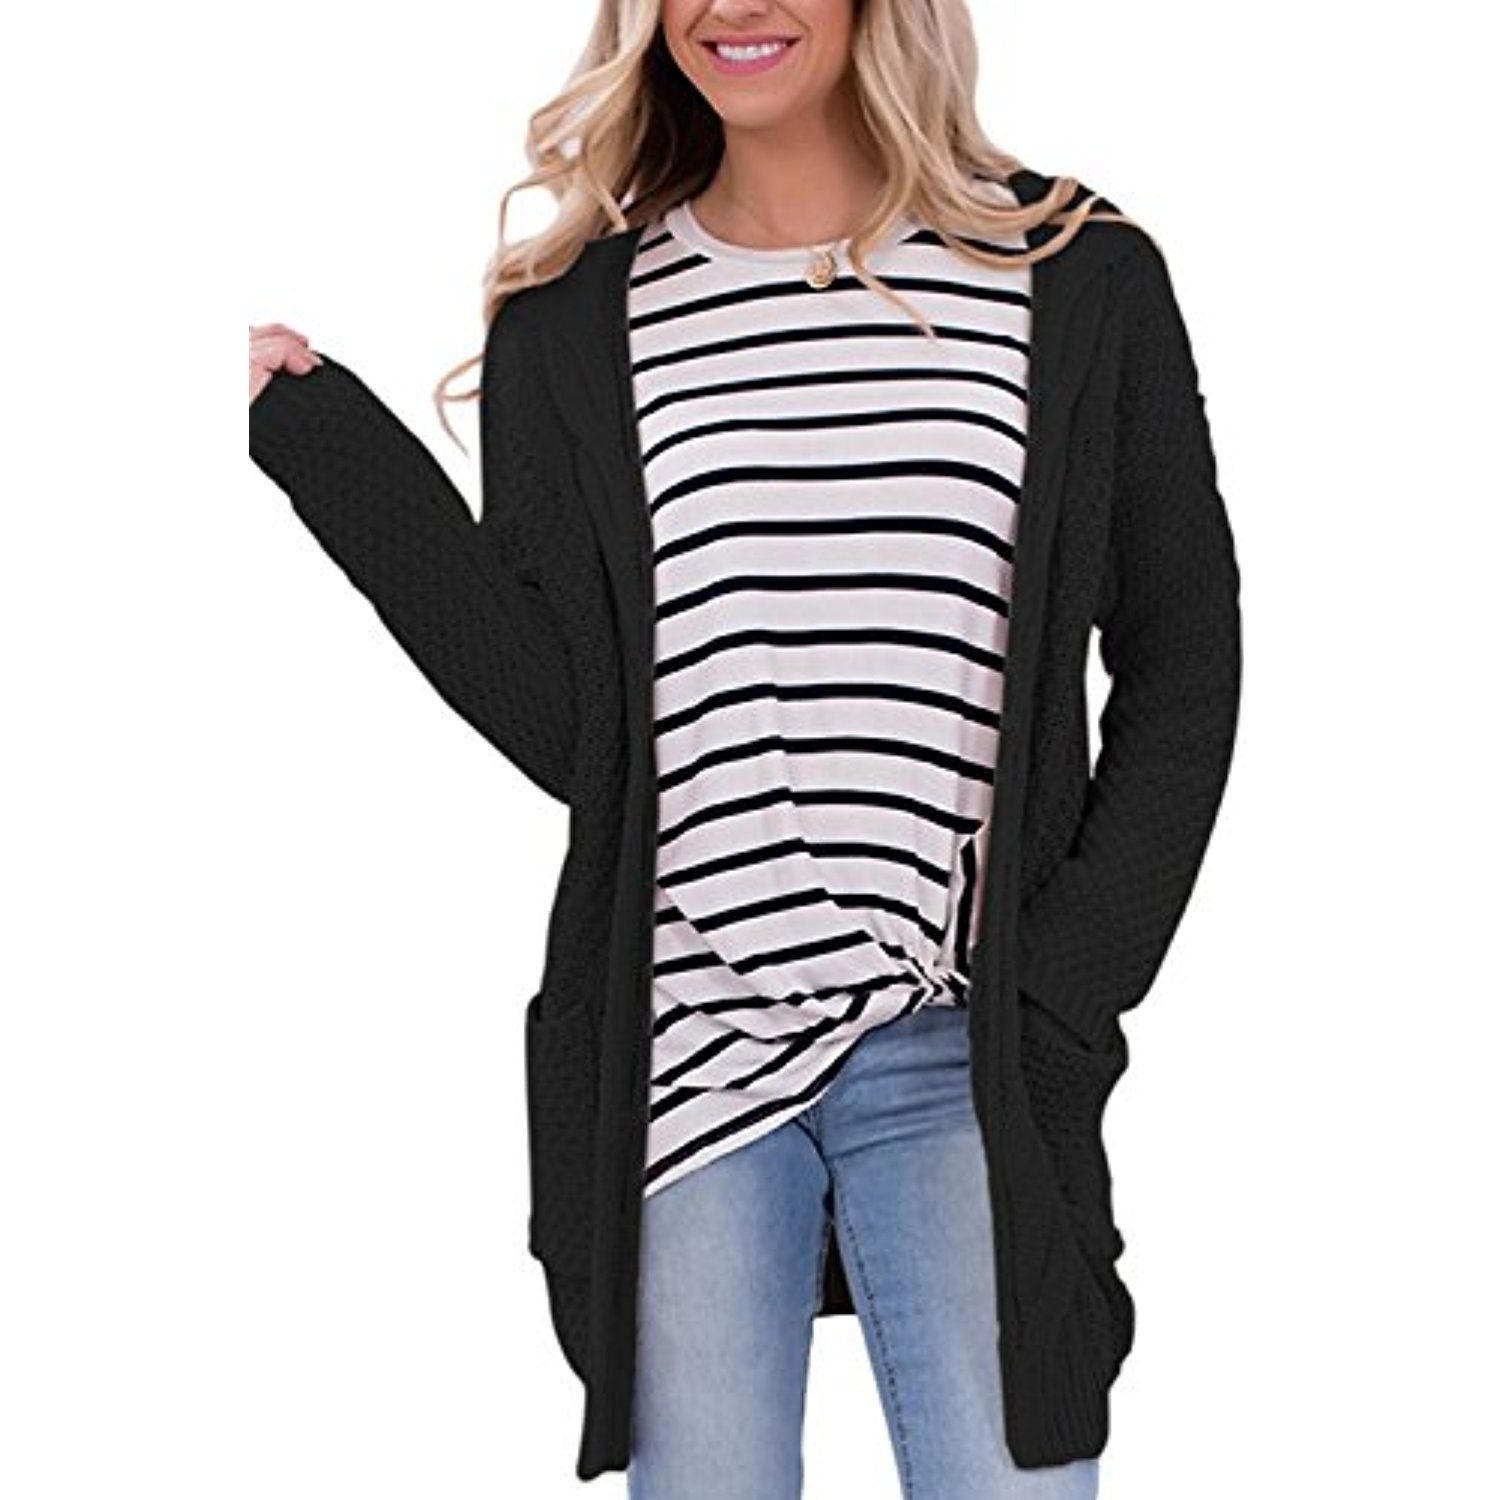 a1d0ad0d38 Women s Open Front Textured Two-Pocket Cardigan Sweater S-2XL   Want to know